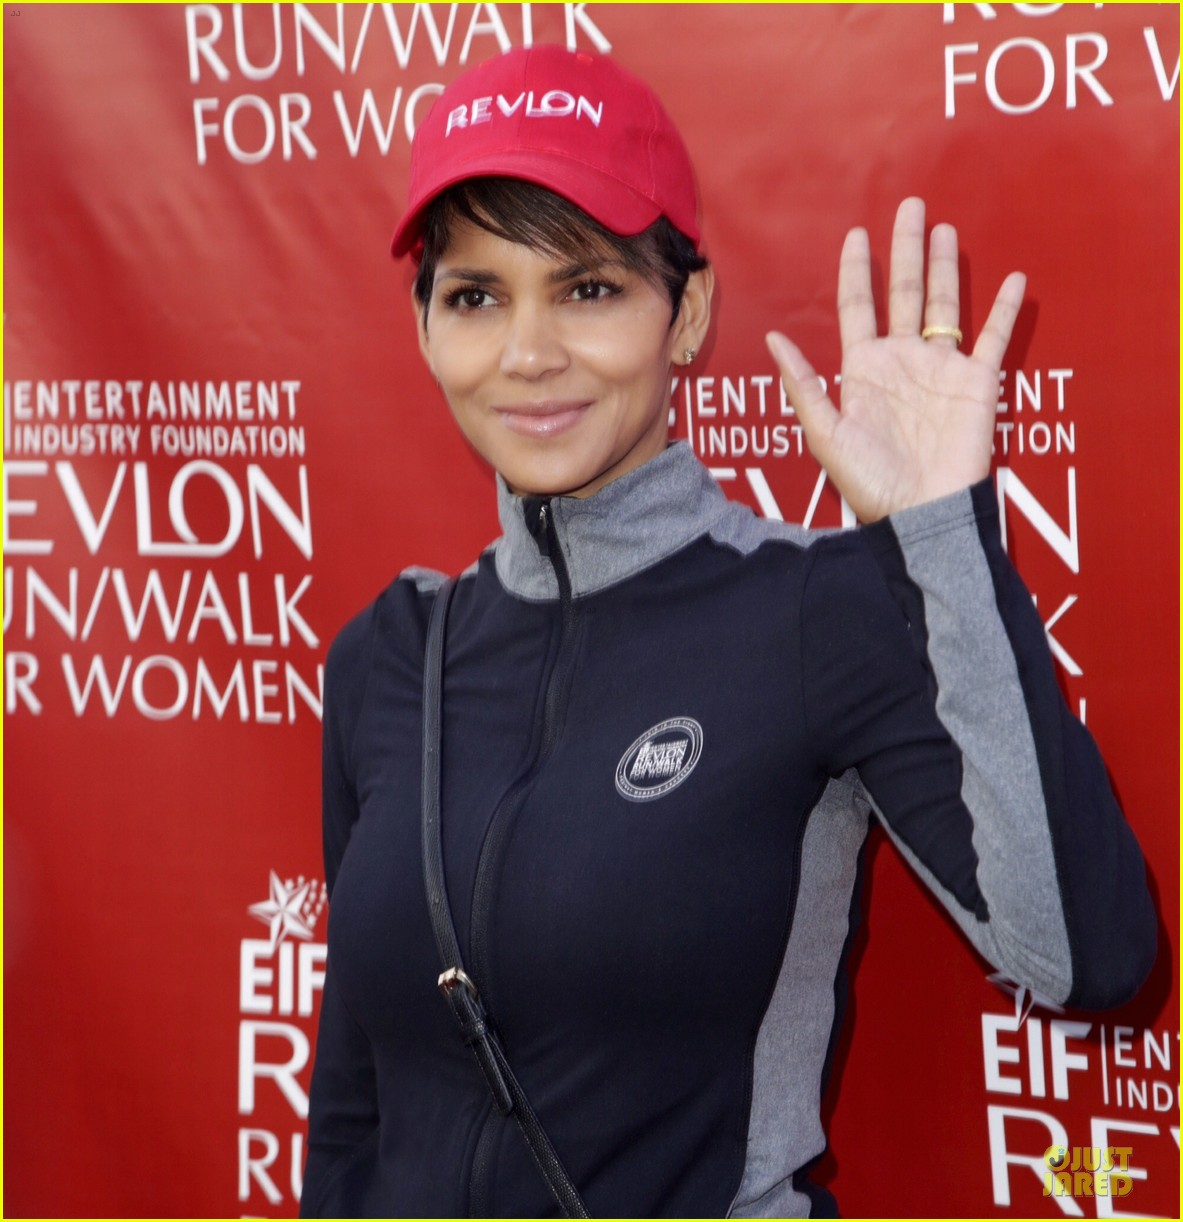 halle berry bruce willis wif revlon run 15